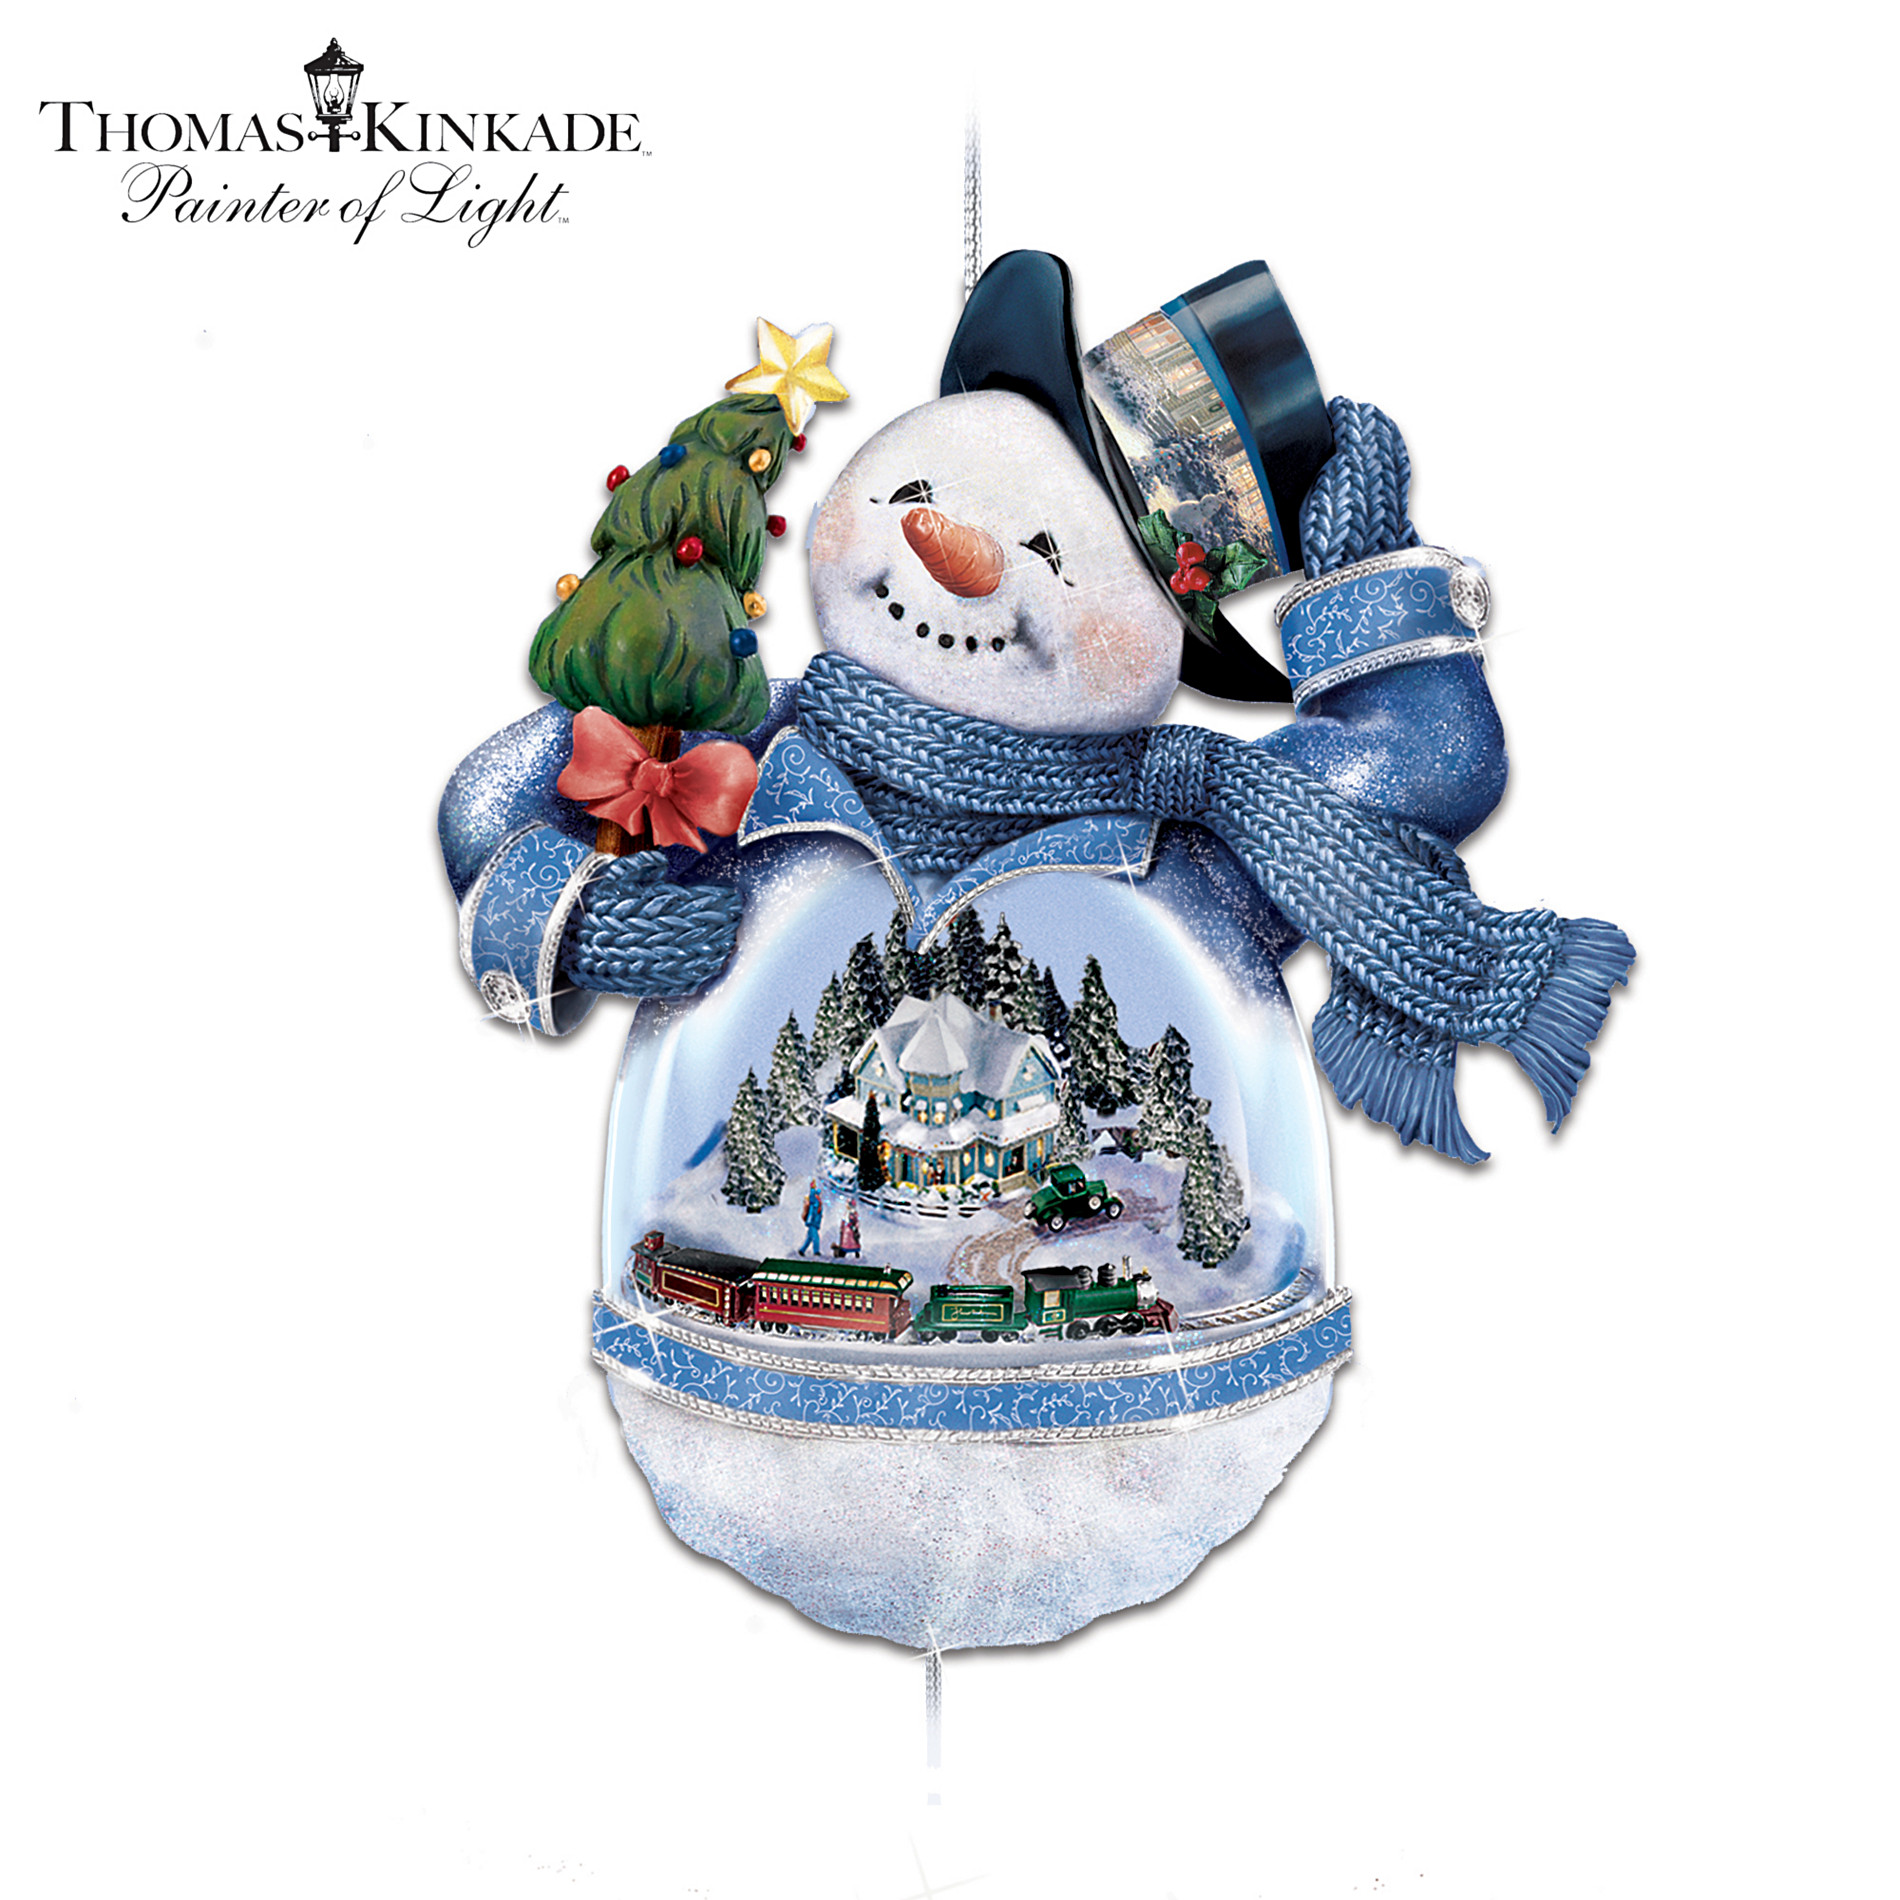 The Bradford Exchange Thomas Kinkade Snowman Victorian Christmas Ornament: Bringing Holiday Cheer at Sears.com